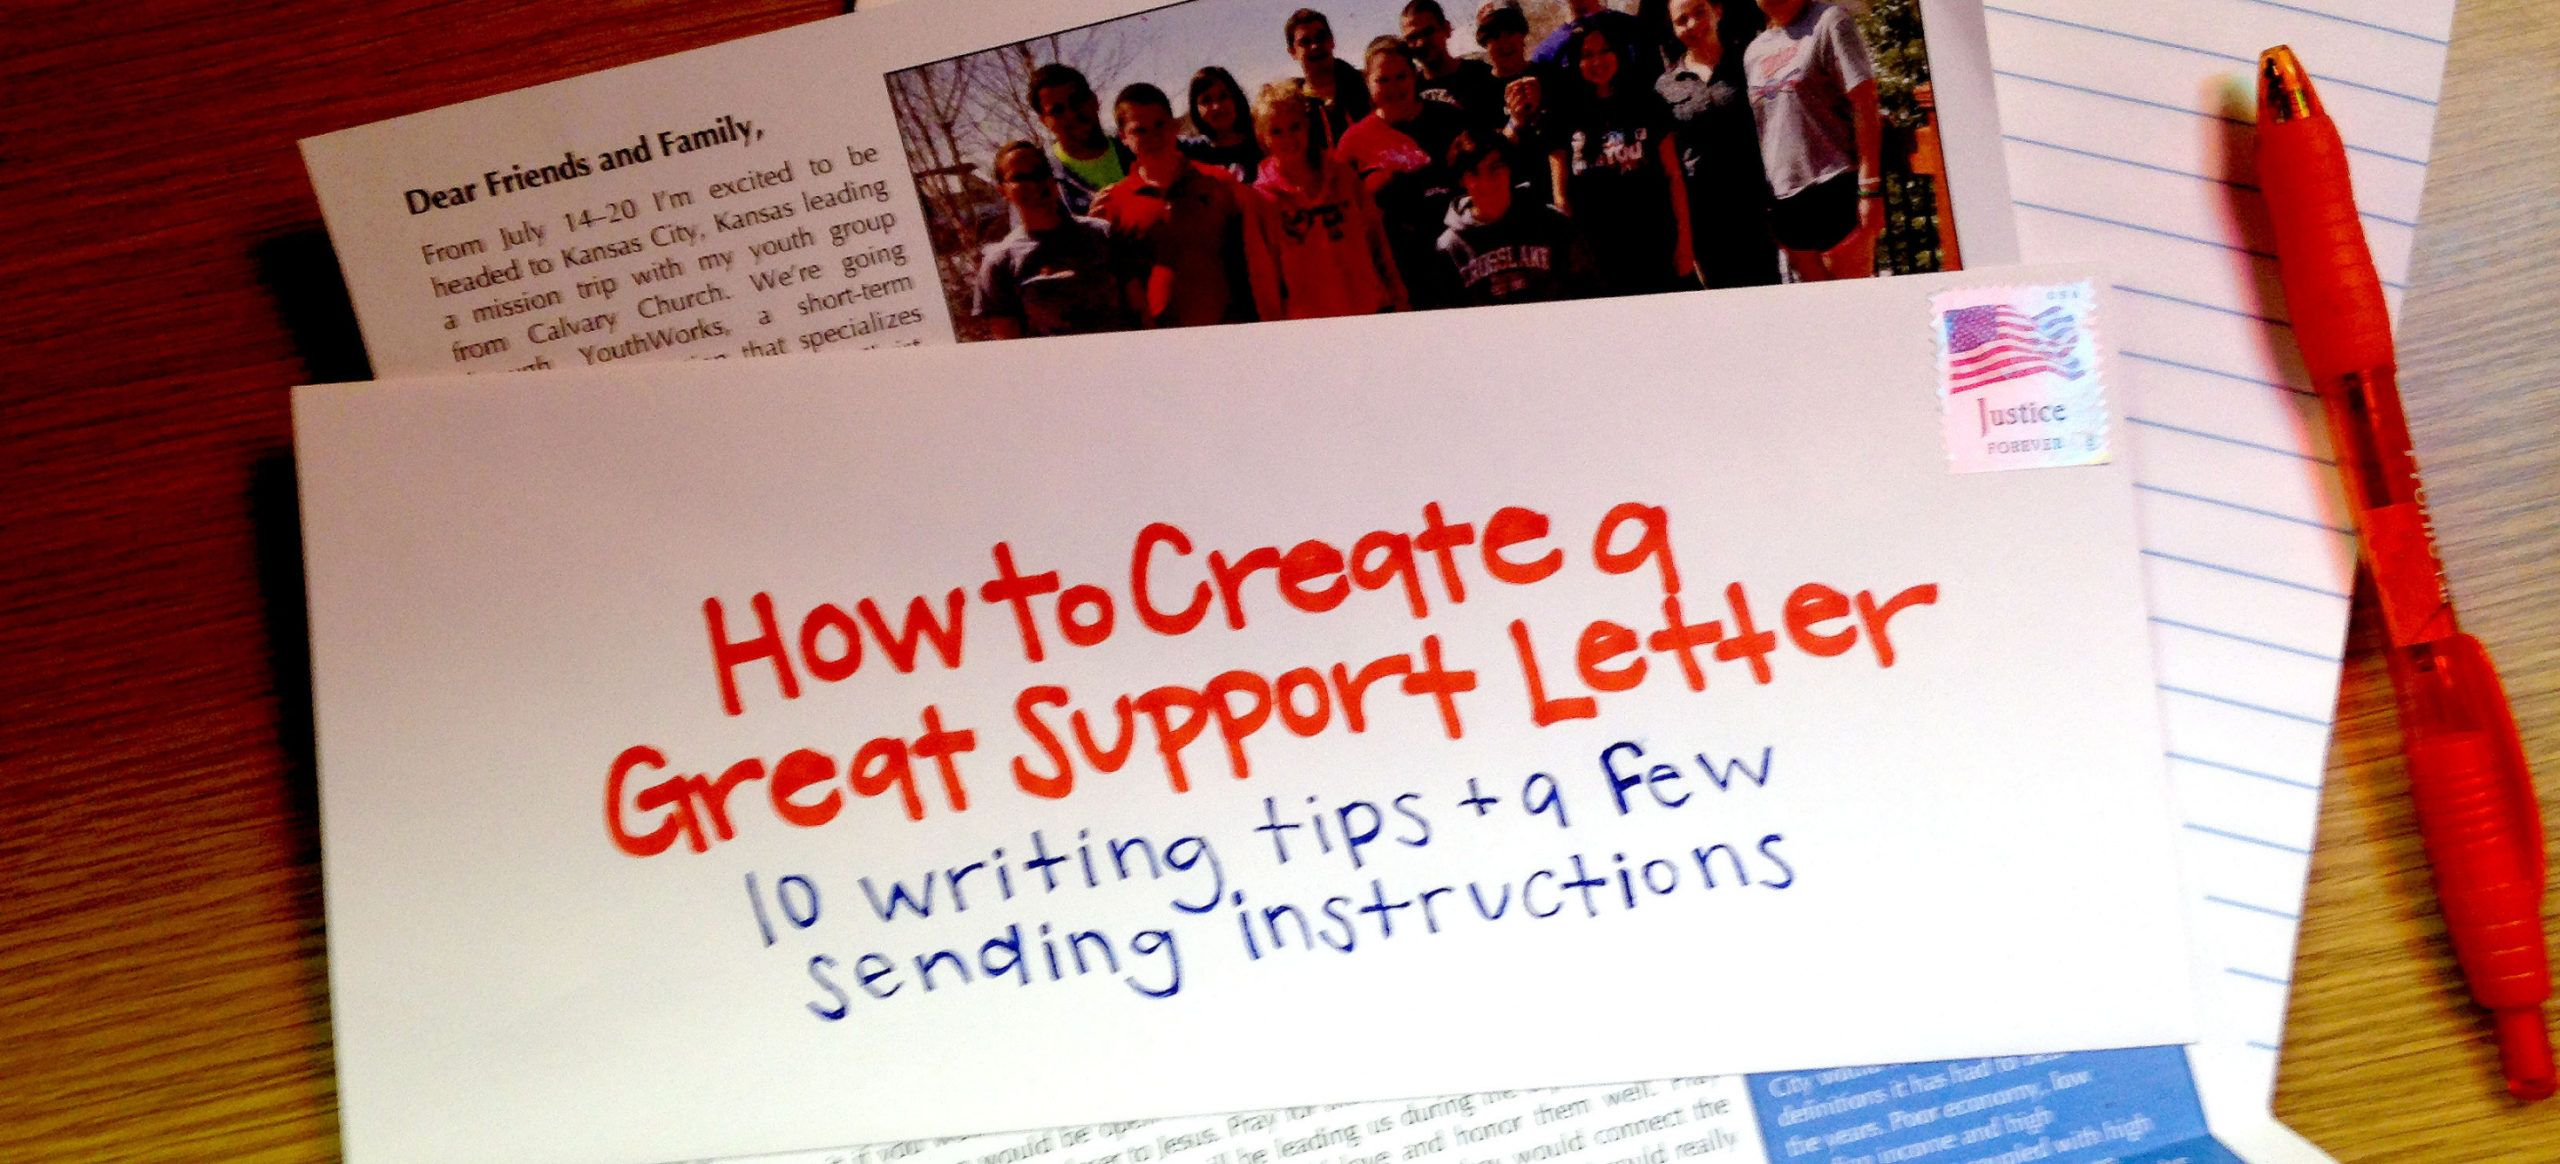 editable how to create a great support letter  youthworks missionary fundraising letter